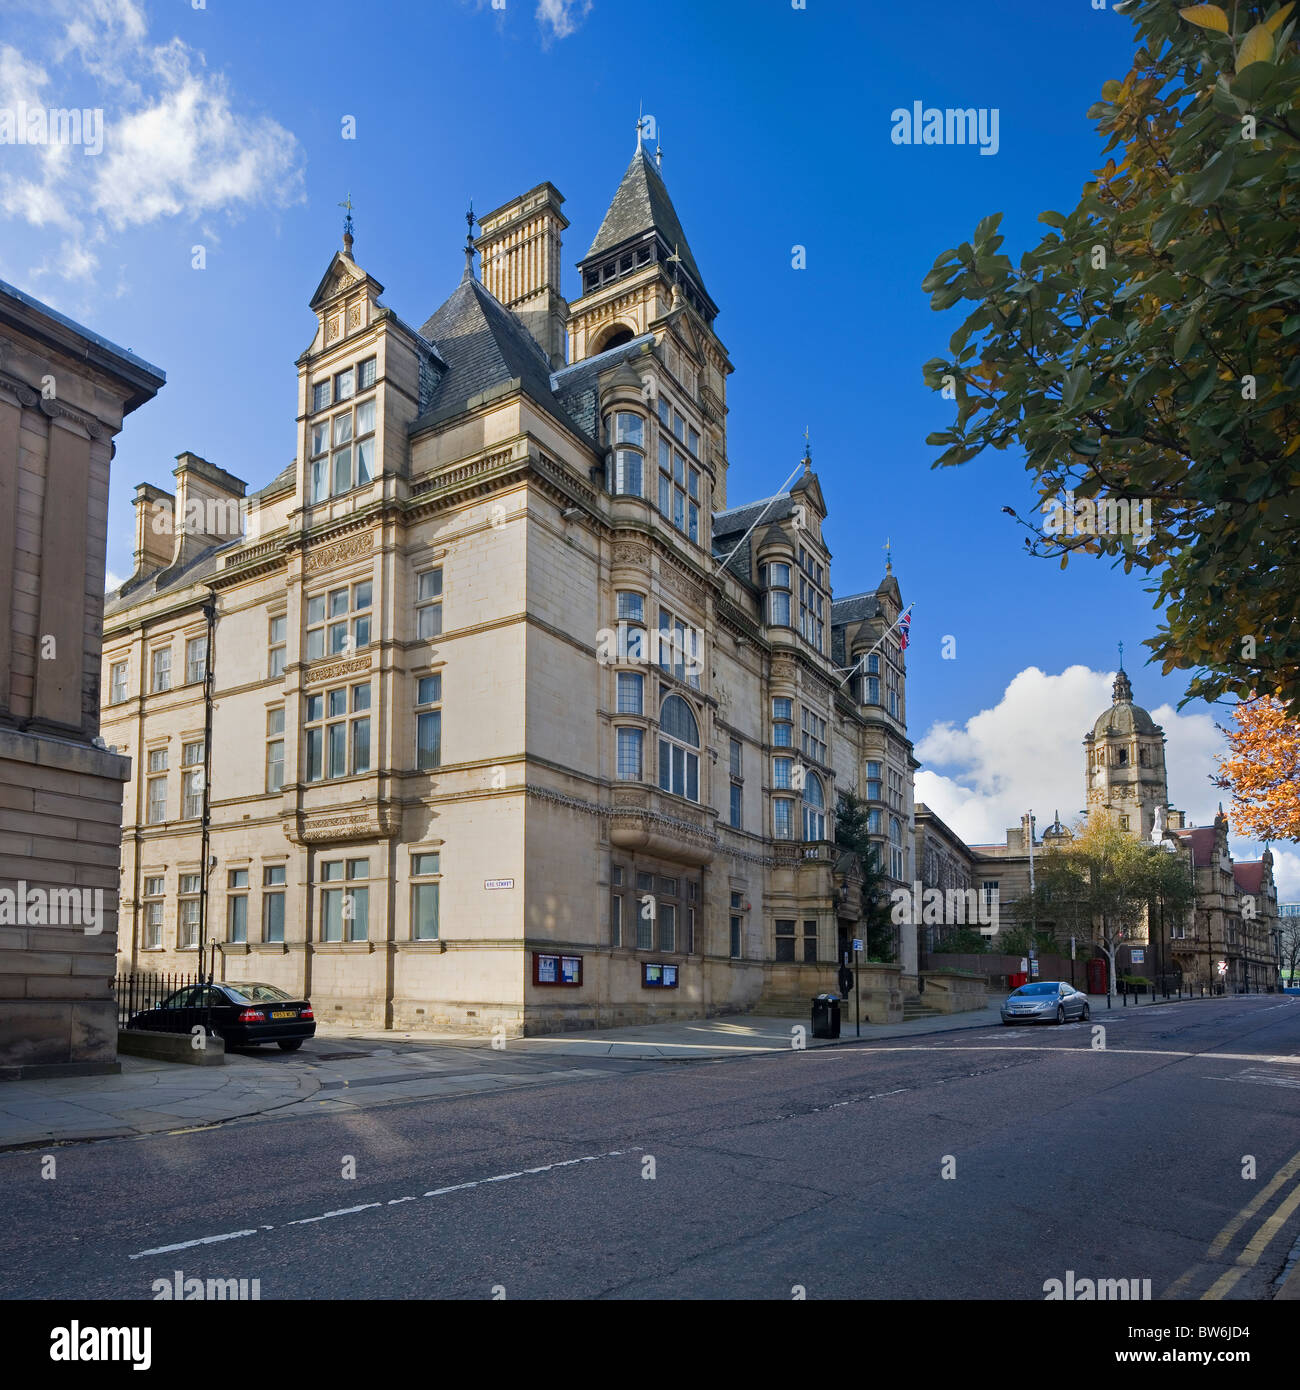 The Town Hall in The Victorian Quarter of Wakefield City Centre, West Yorkshire, U.K - Stock Image